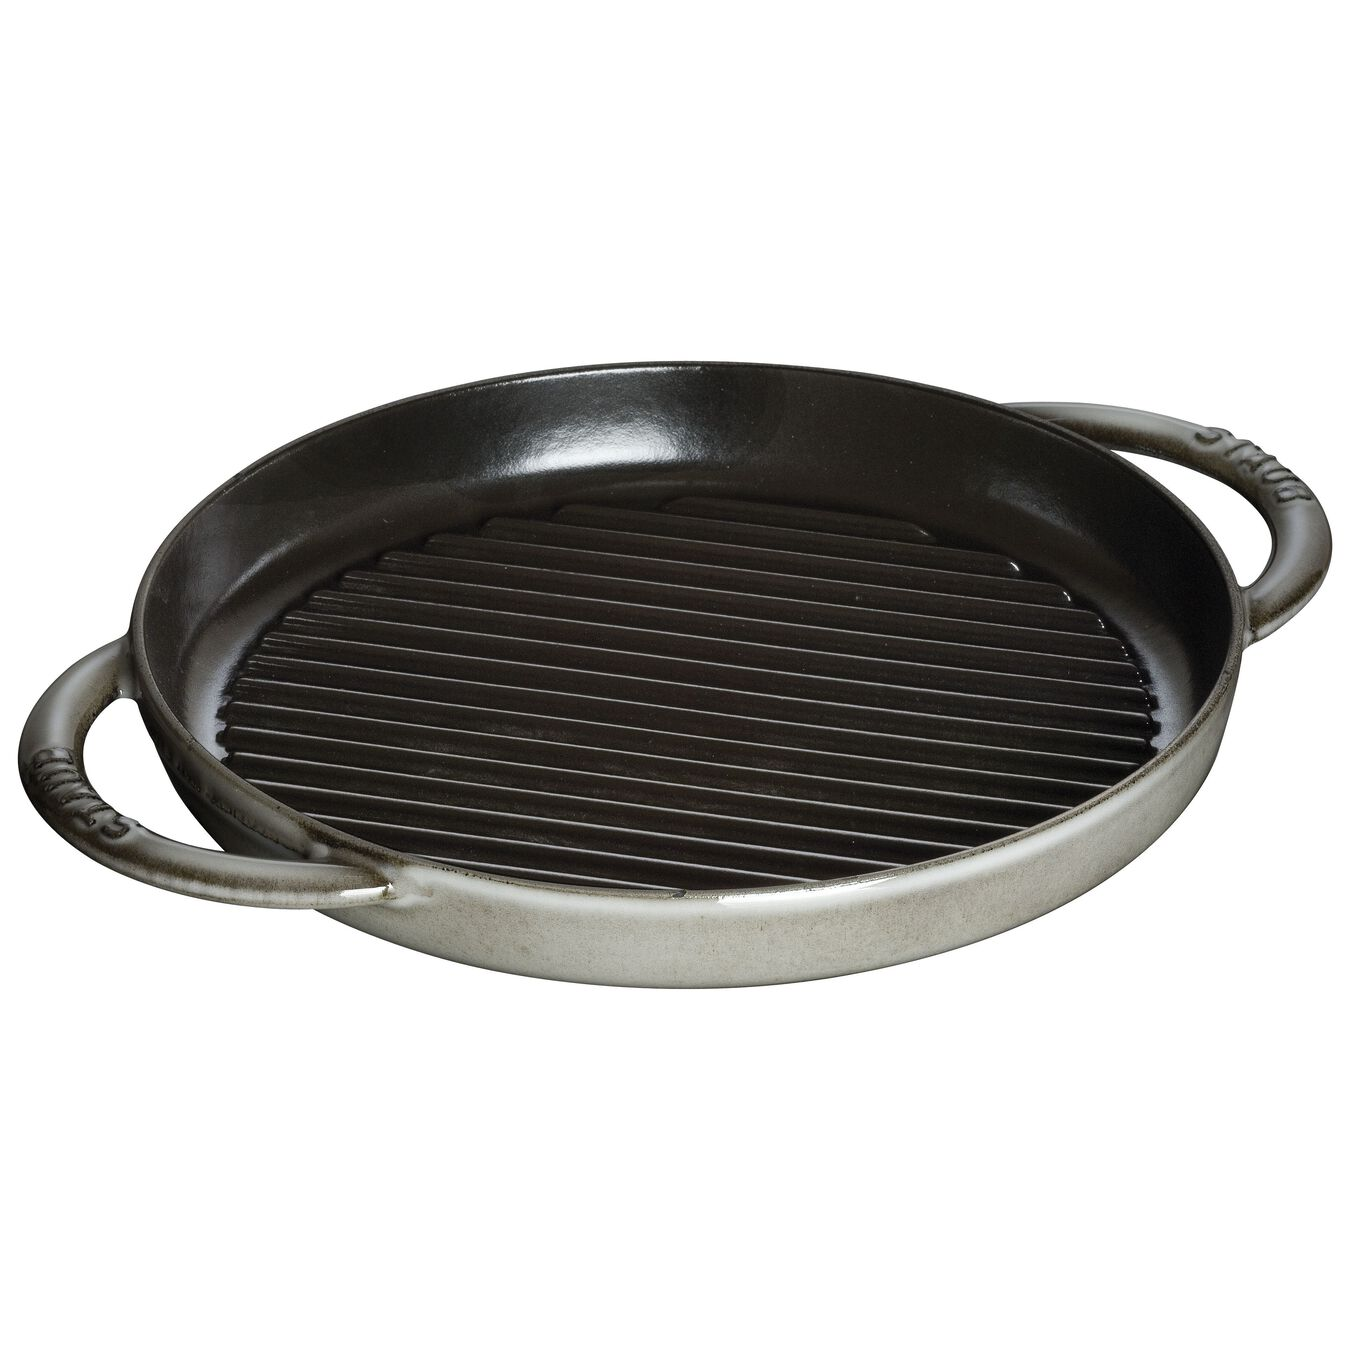 10-inch, Pure Grill, graphite grey,,large 1